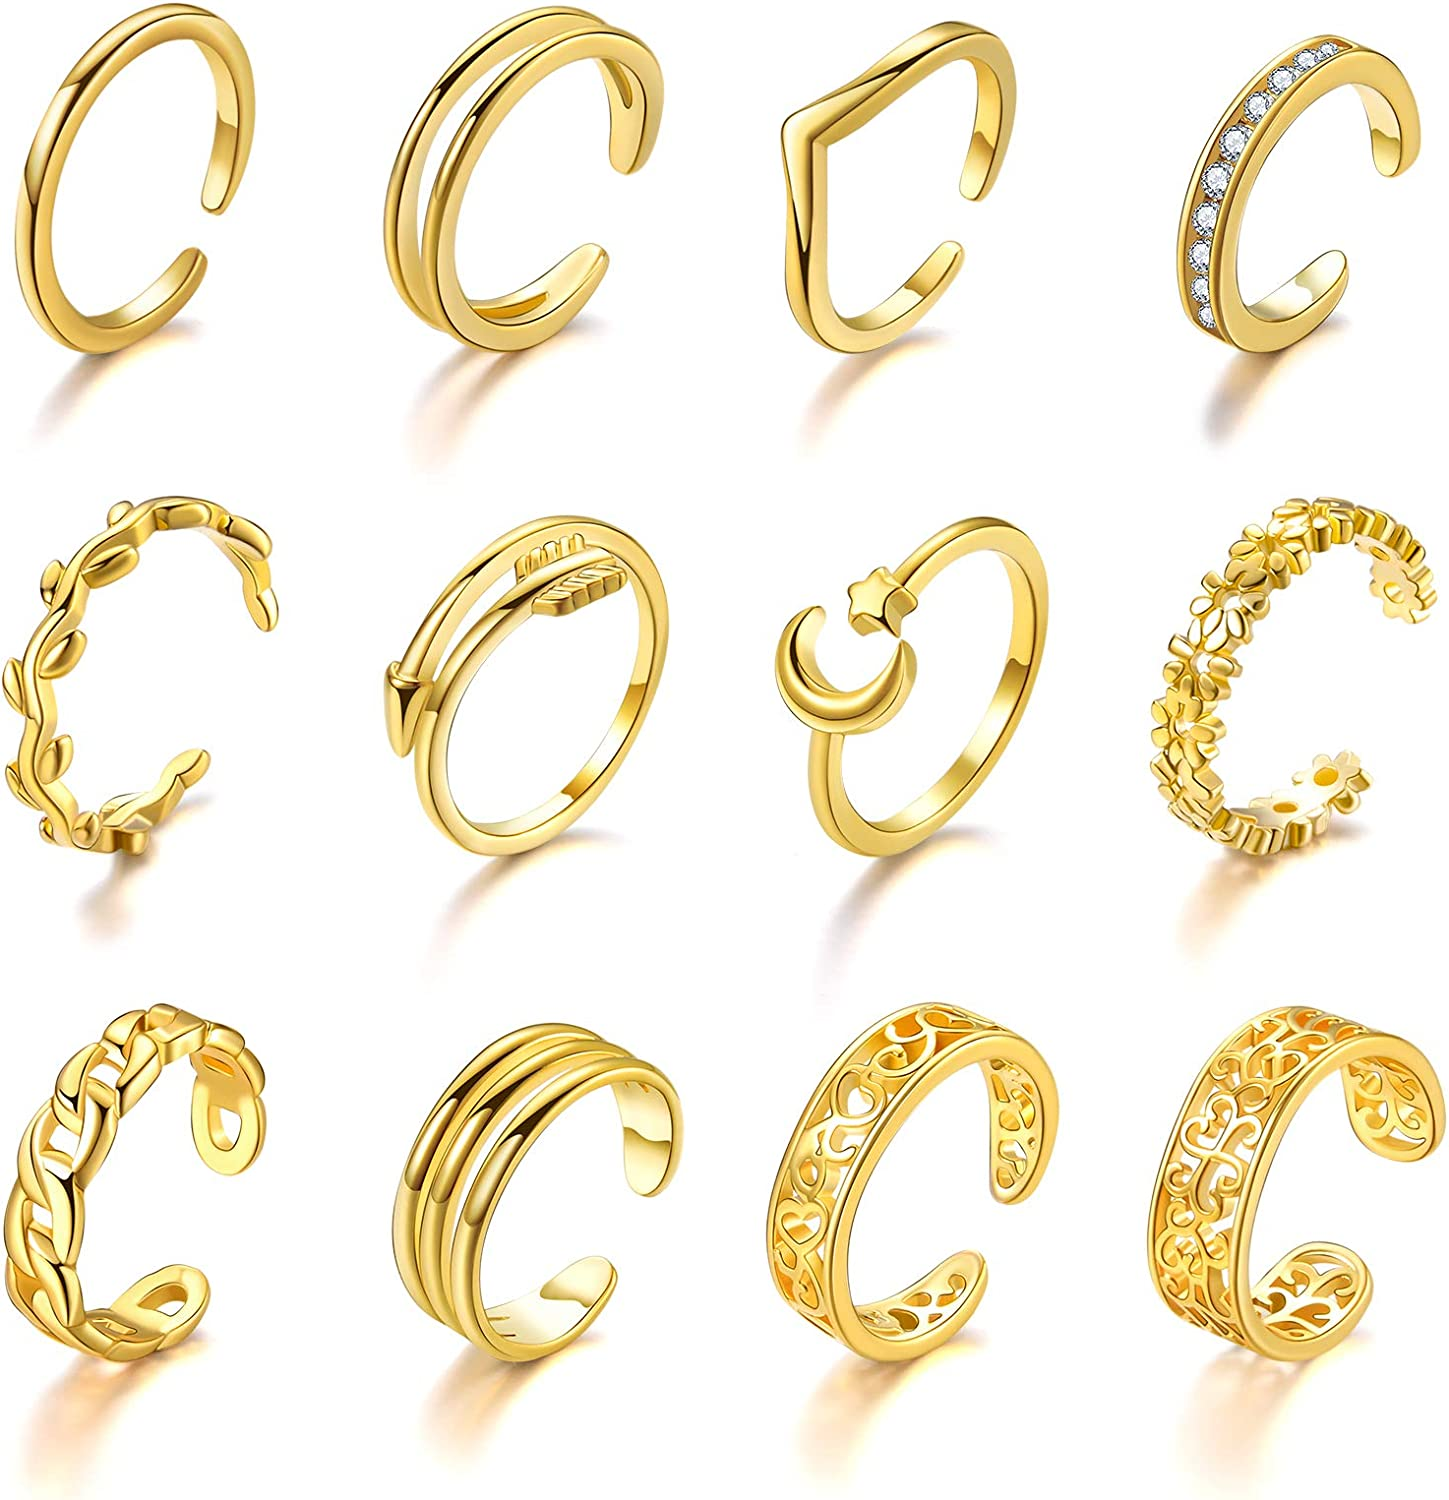 Senteria Sale special price 12PCS Adjustable Toe Rings for Gold CZ Women 14K Plated Popular products